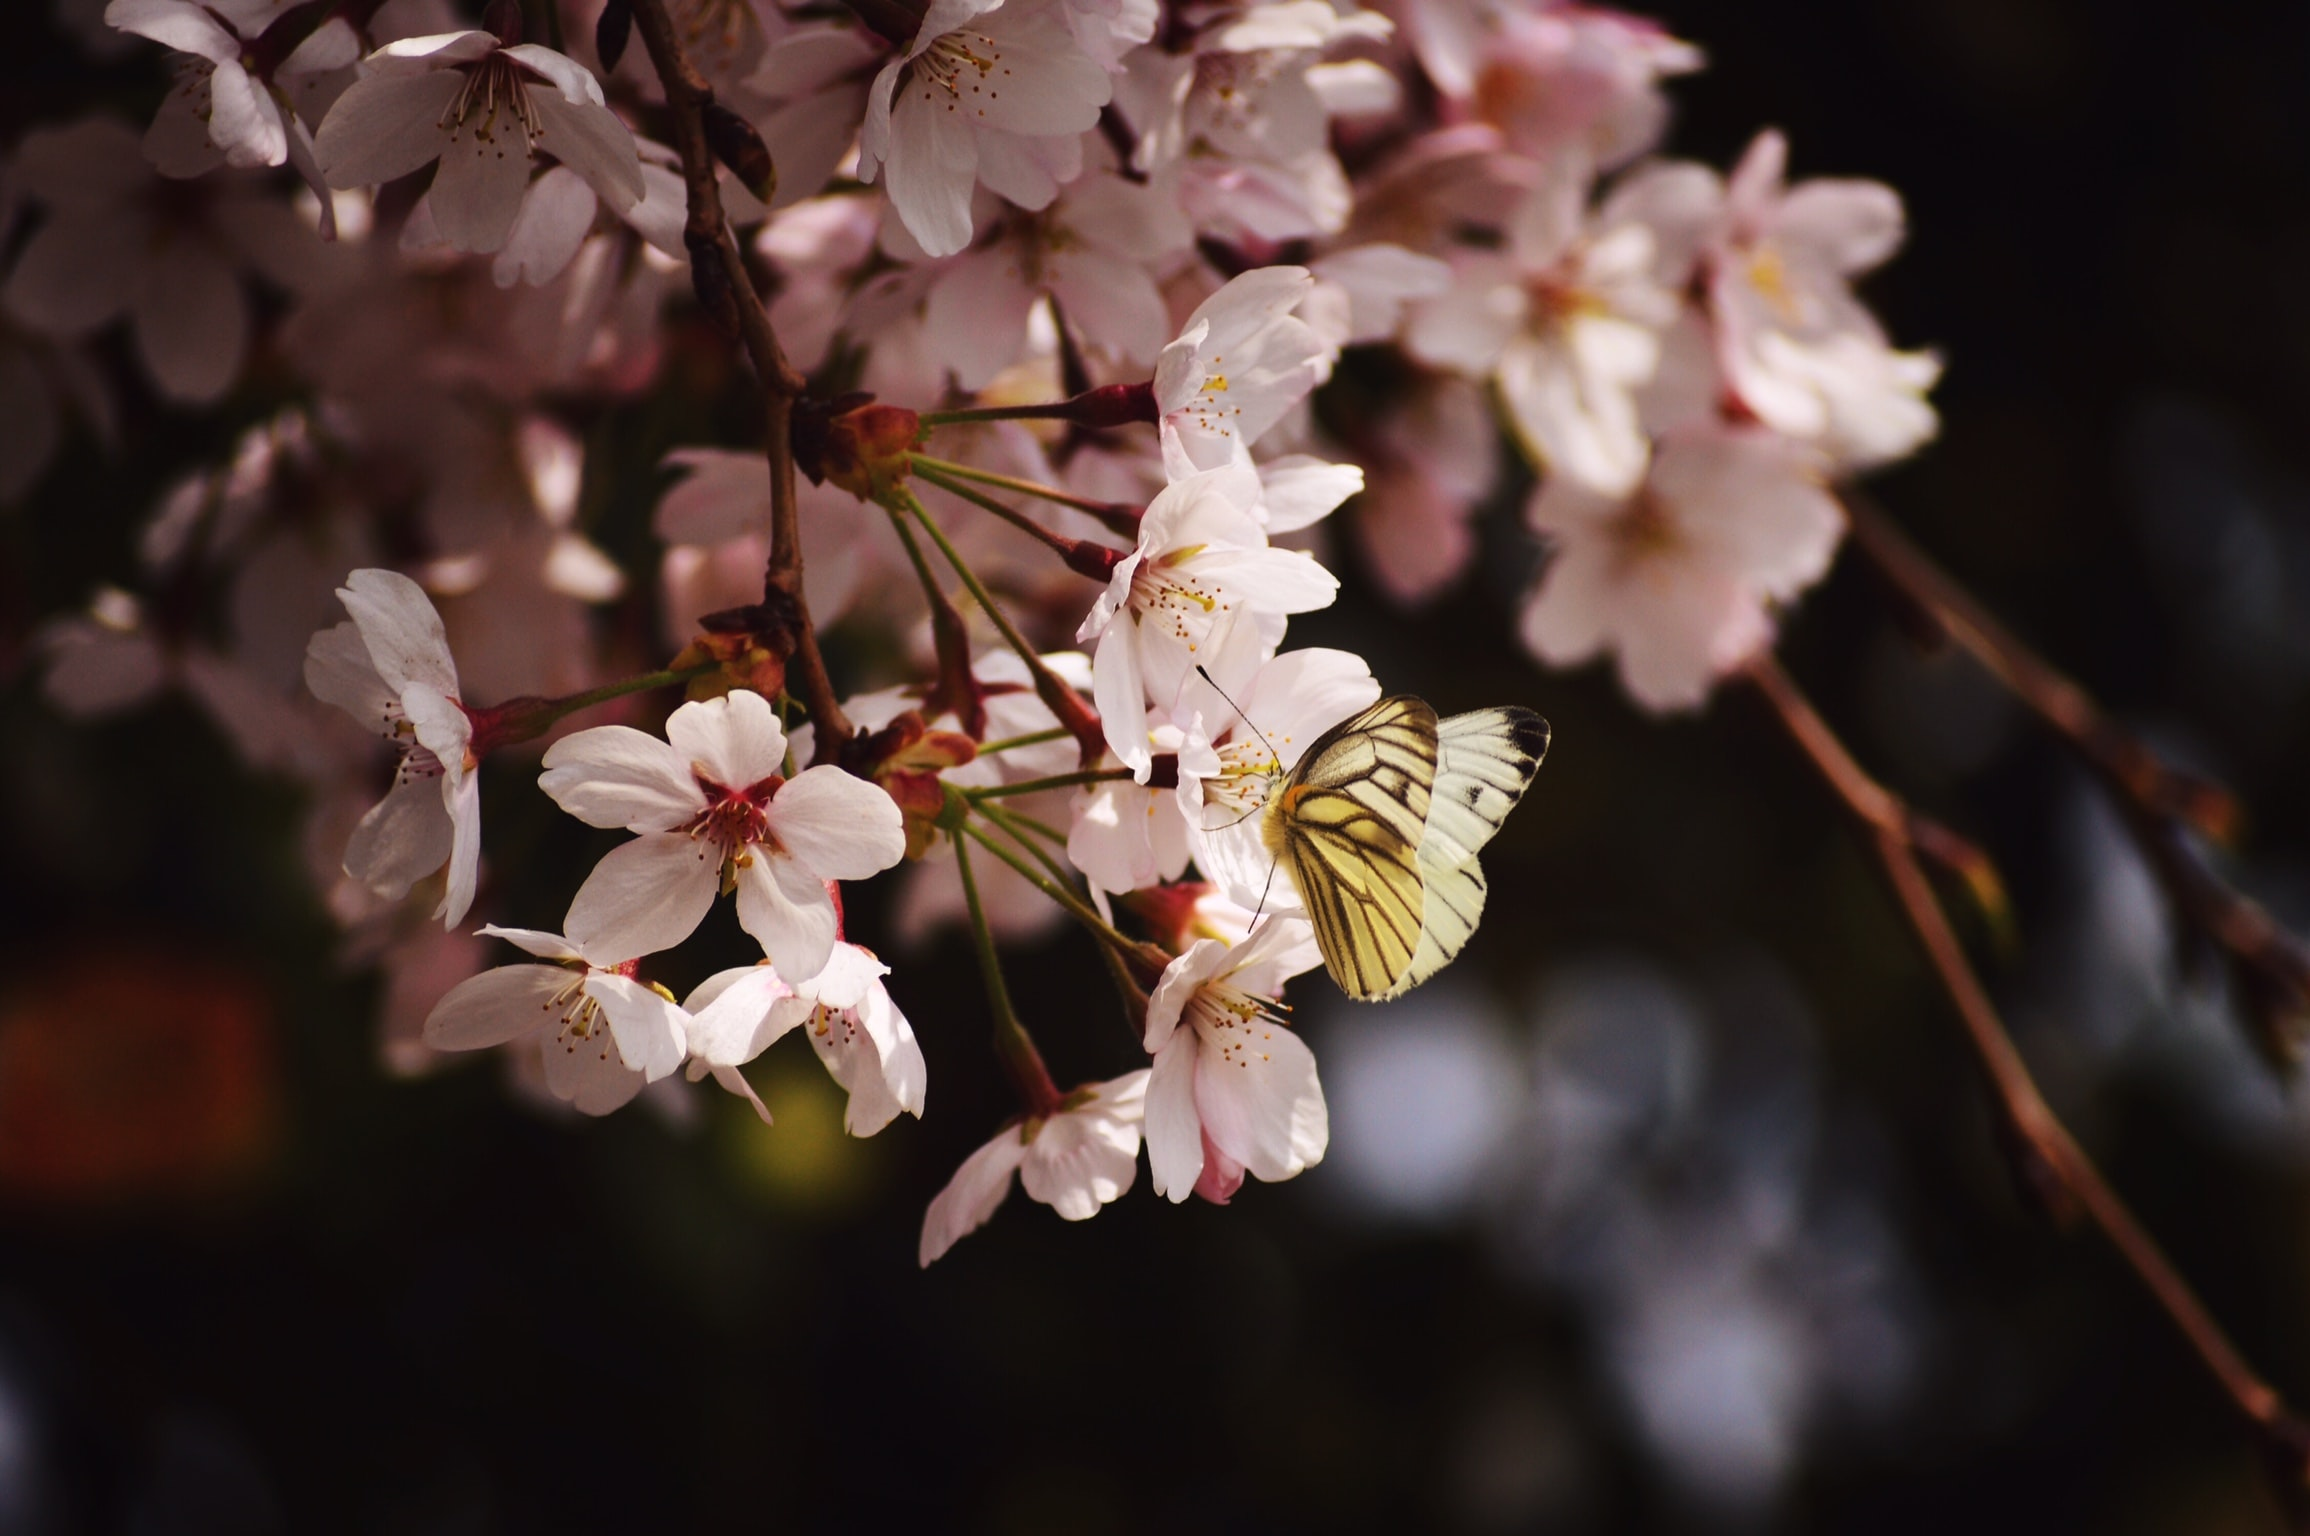 shallow focus photography of butterfly on flower